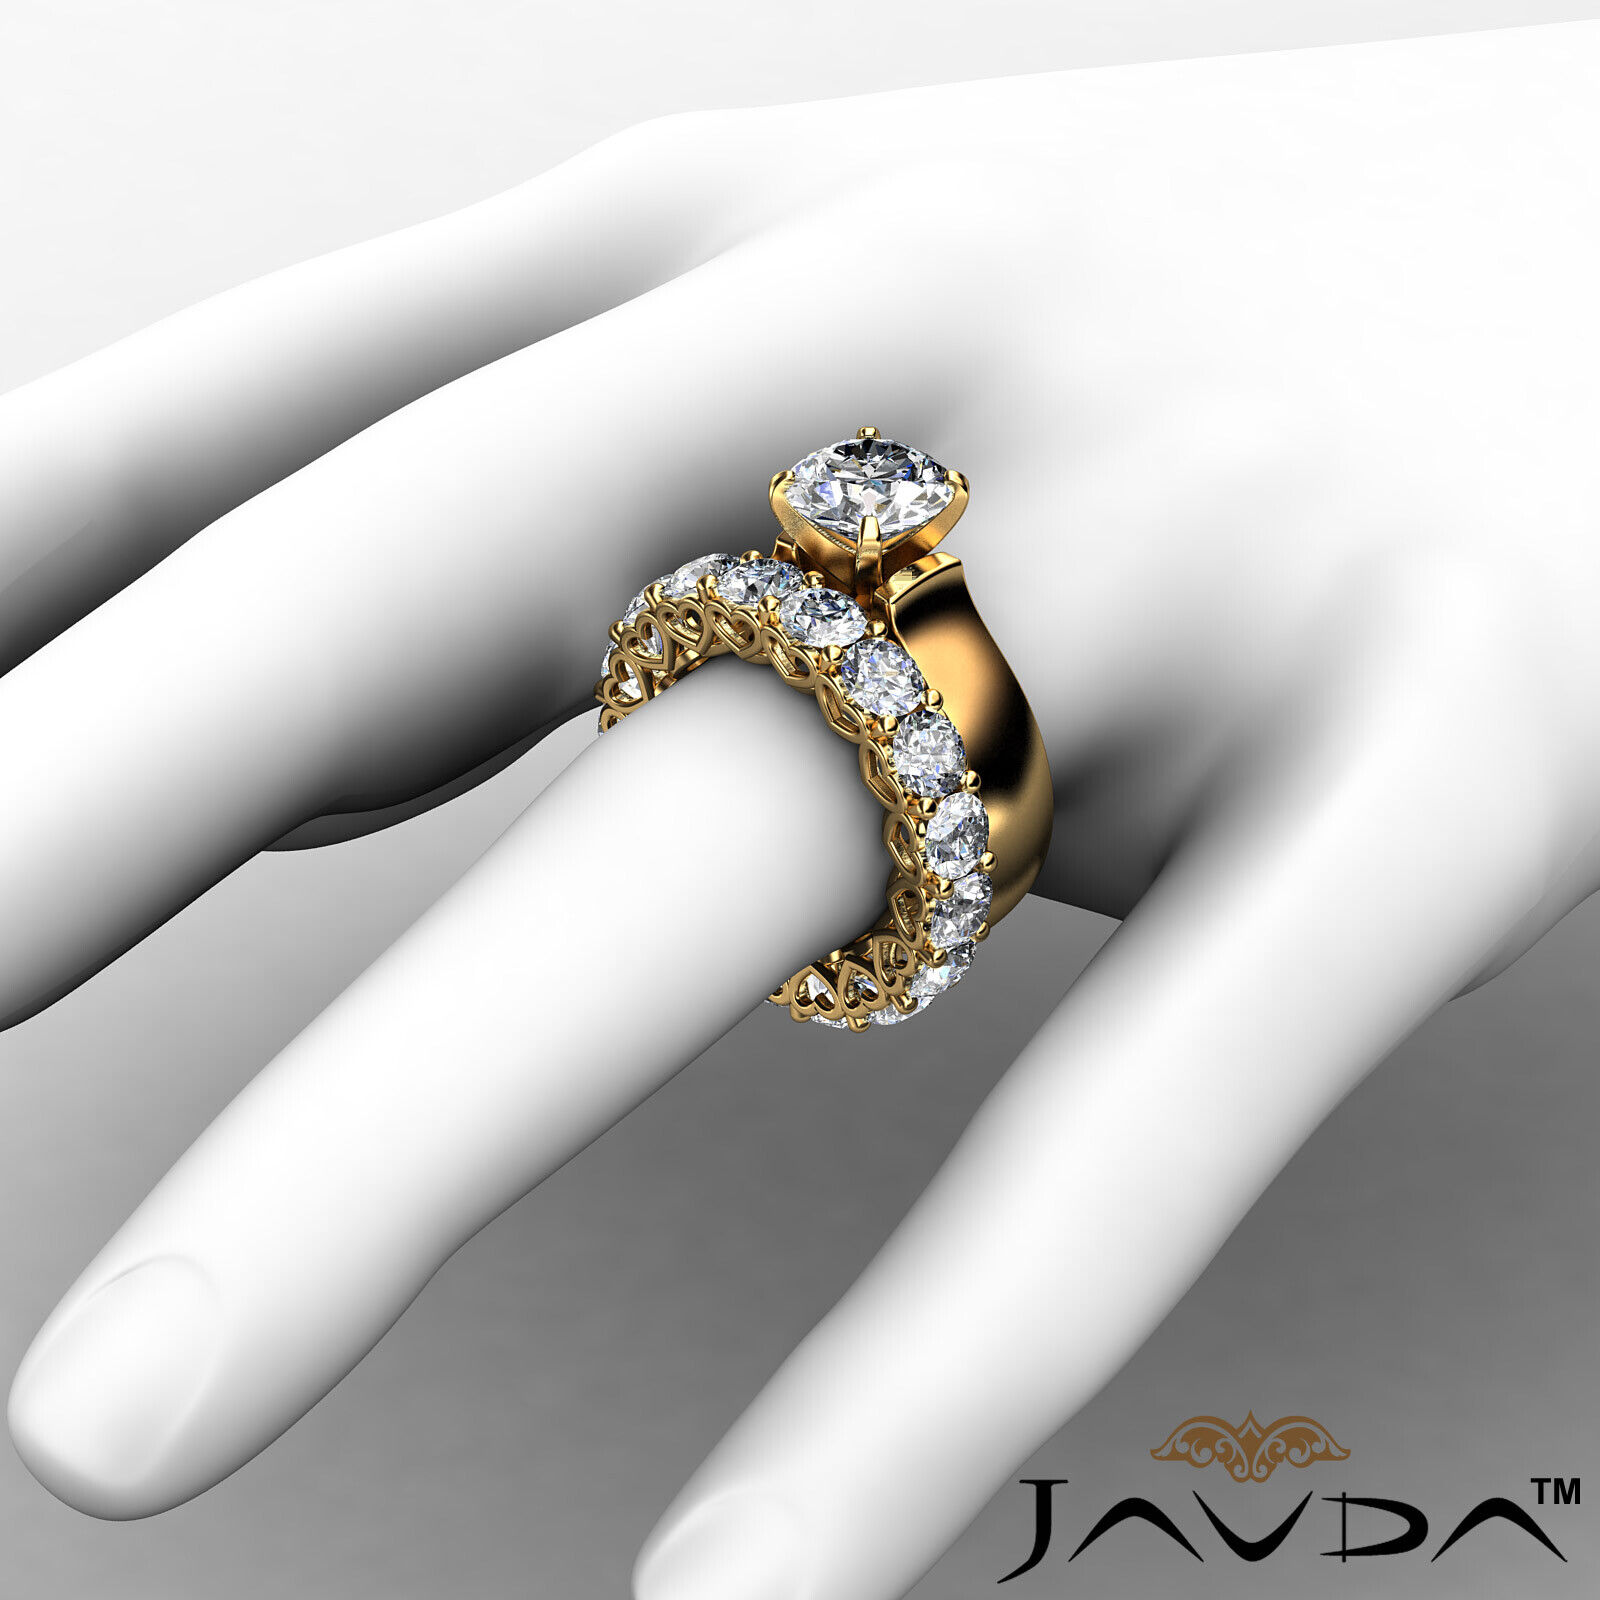 7.05Ct. Diamond Engagement Wedding Bridal Set Ring 14k Yellow Gold GIA Certified 3